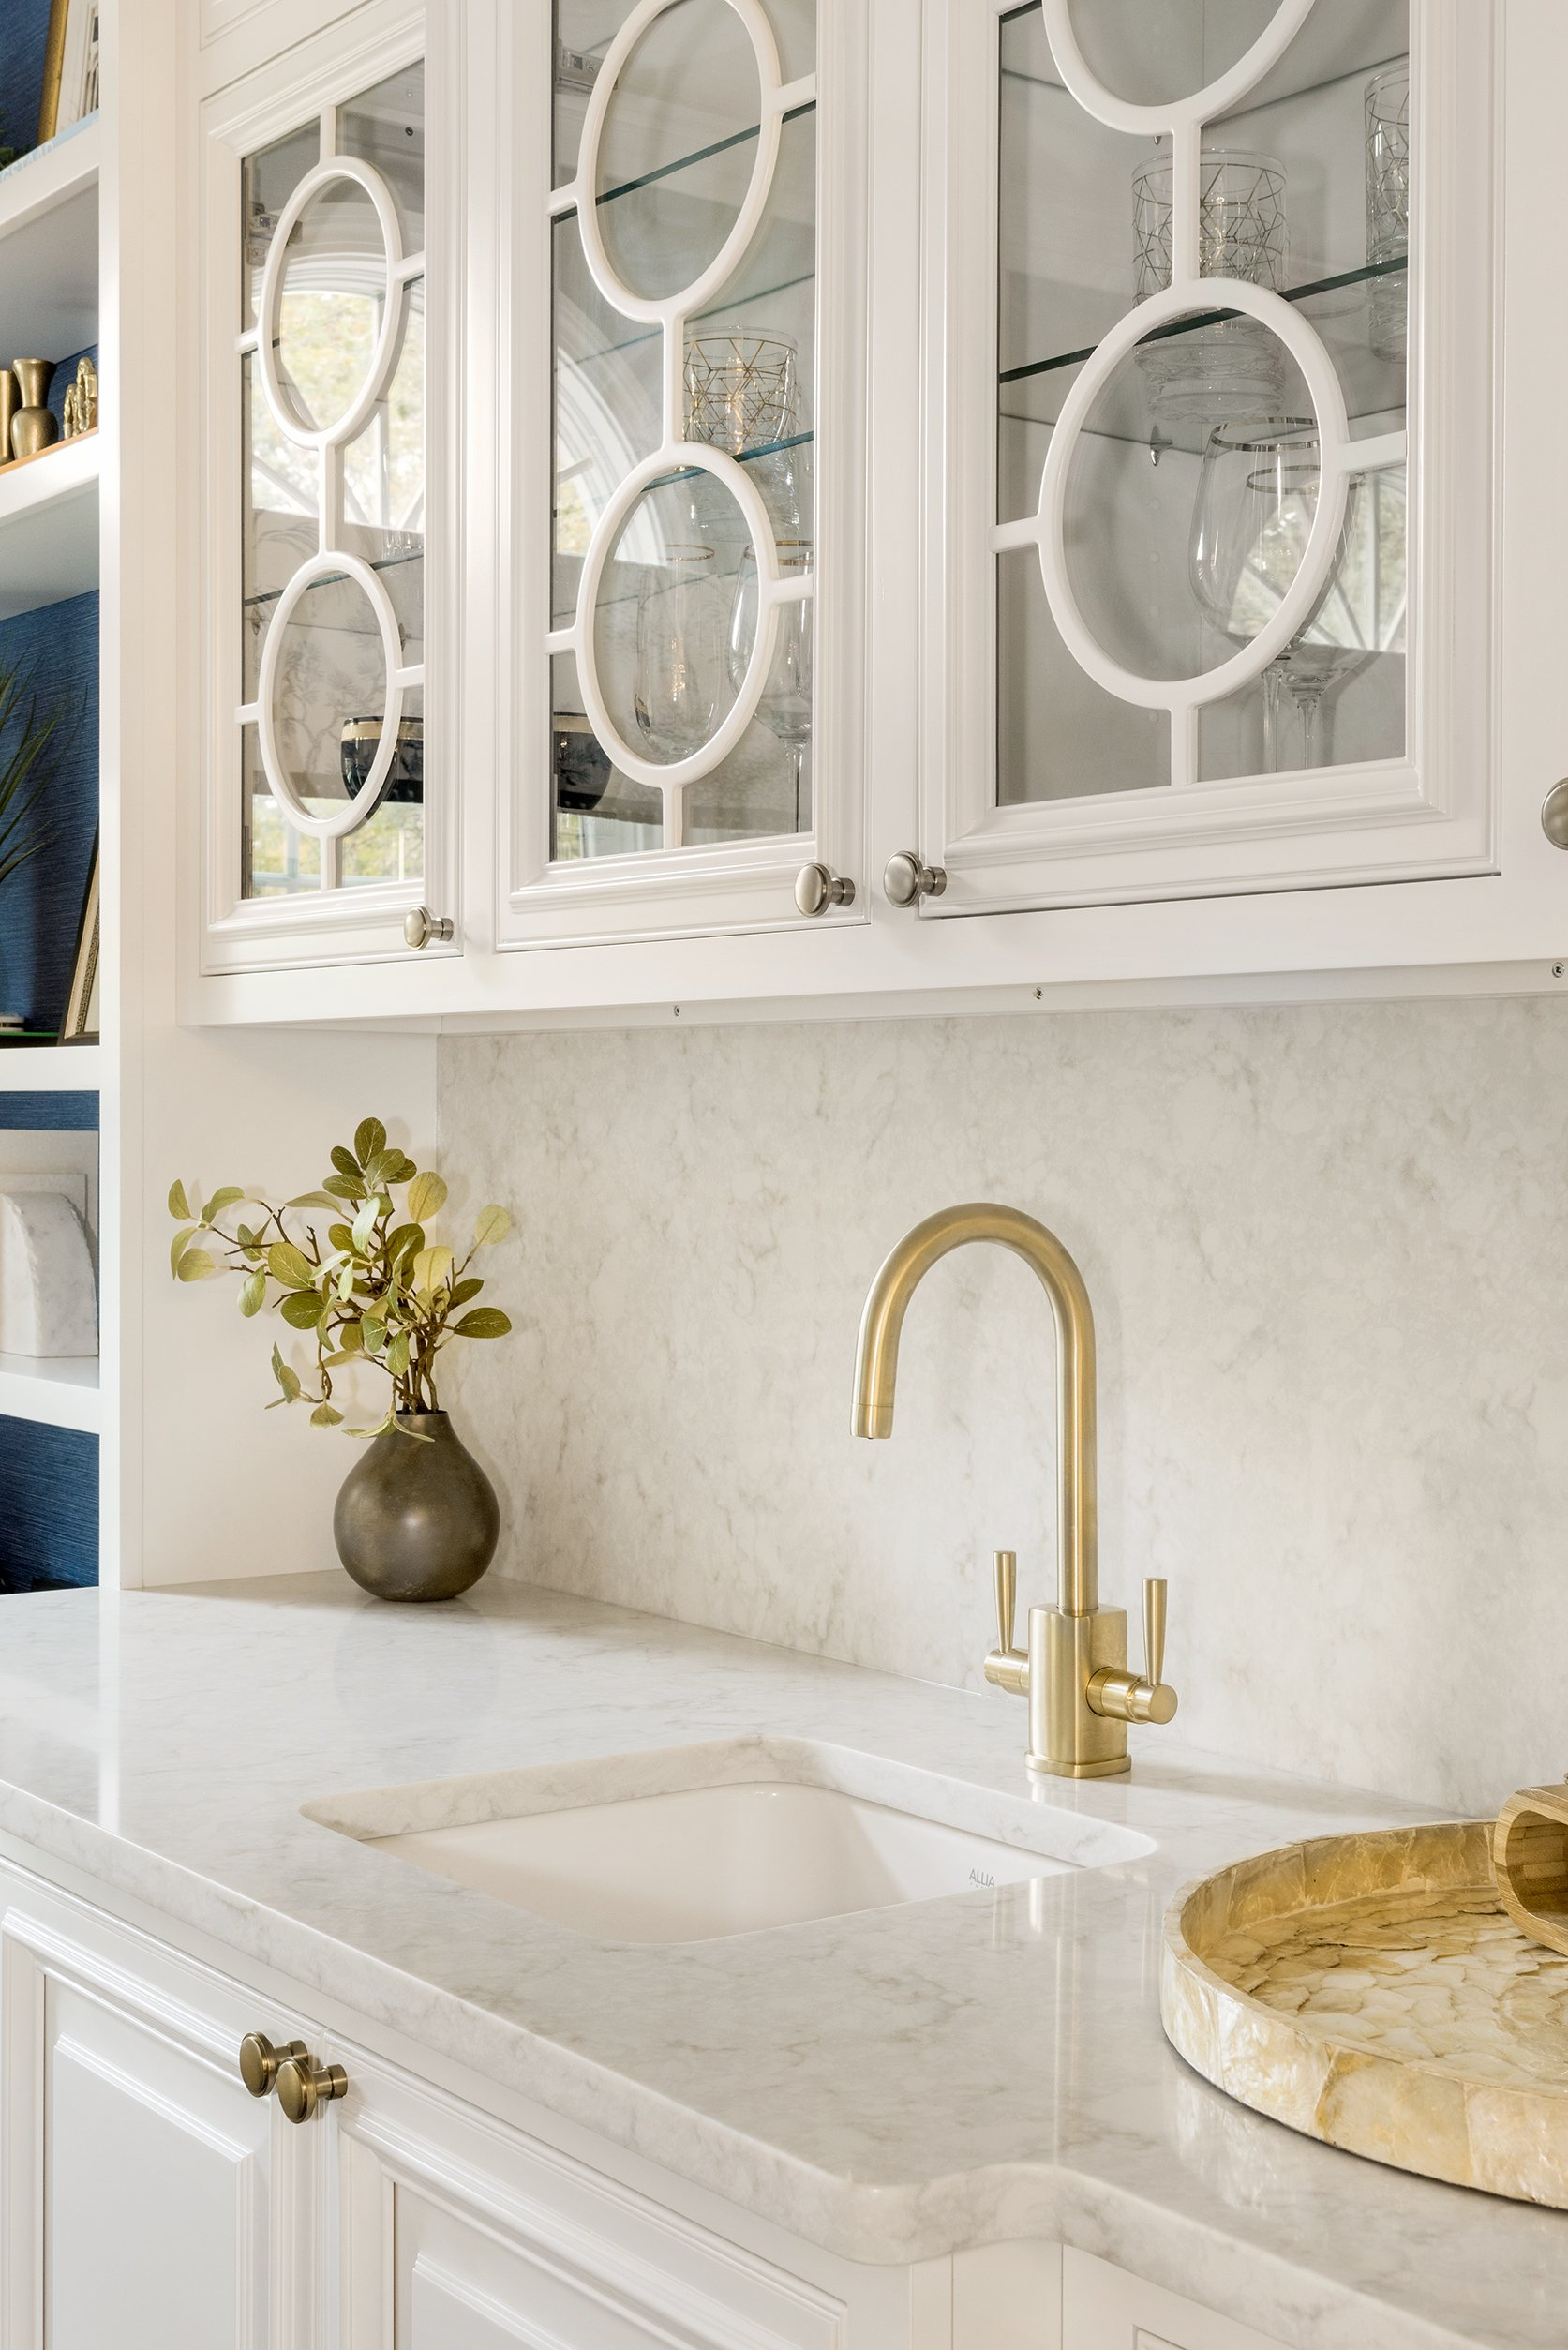 Blakely Interior Design The Linden Project Wet Bar Sink